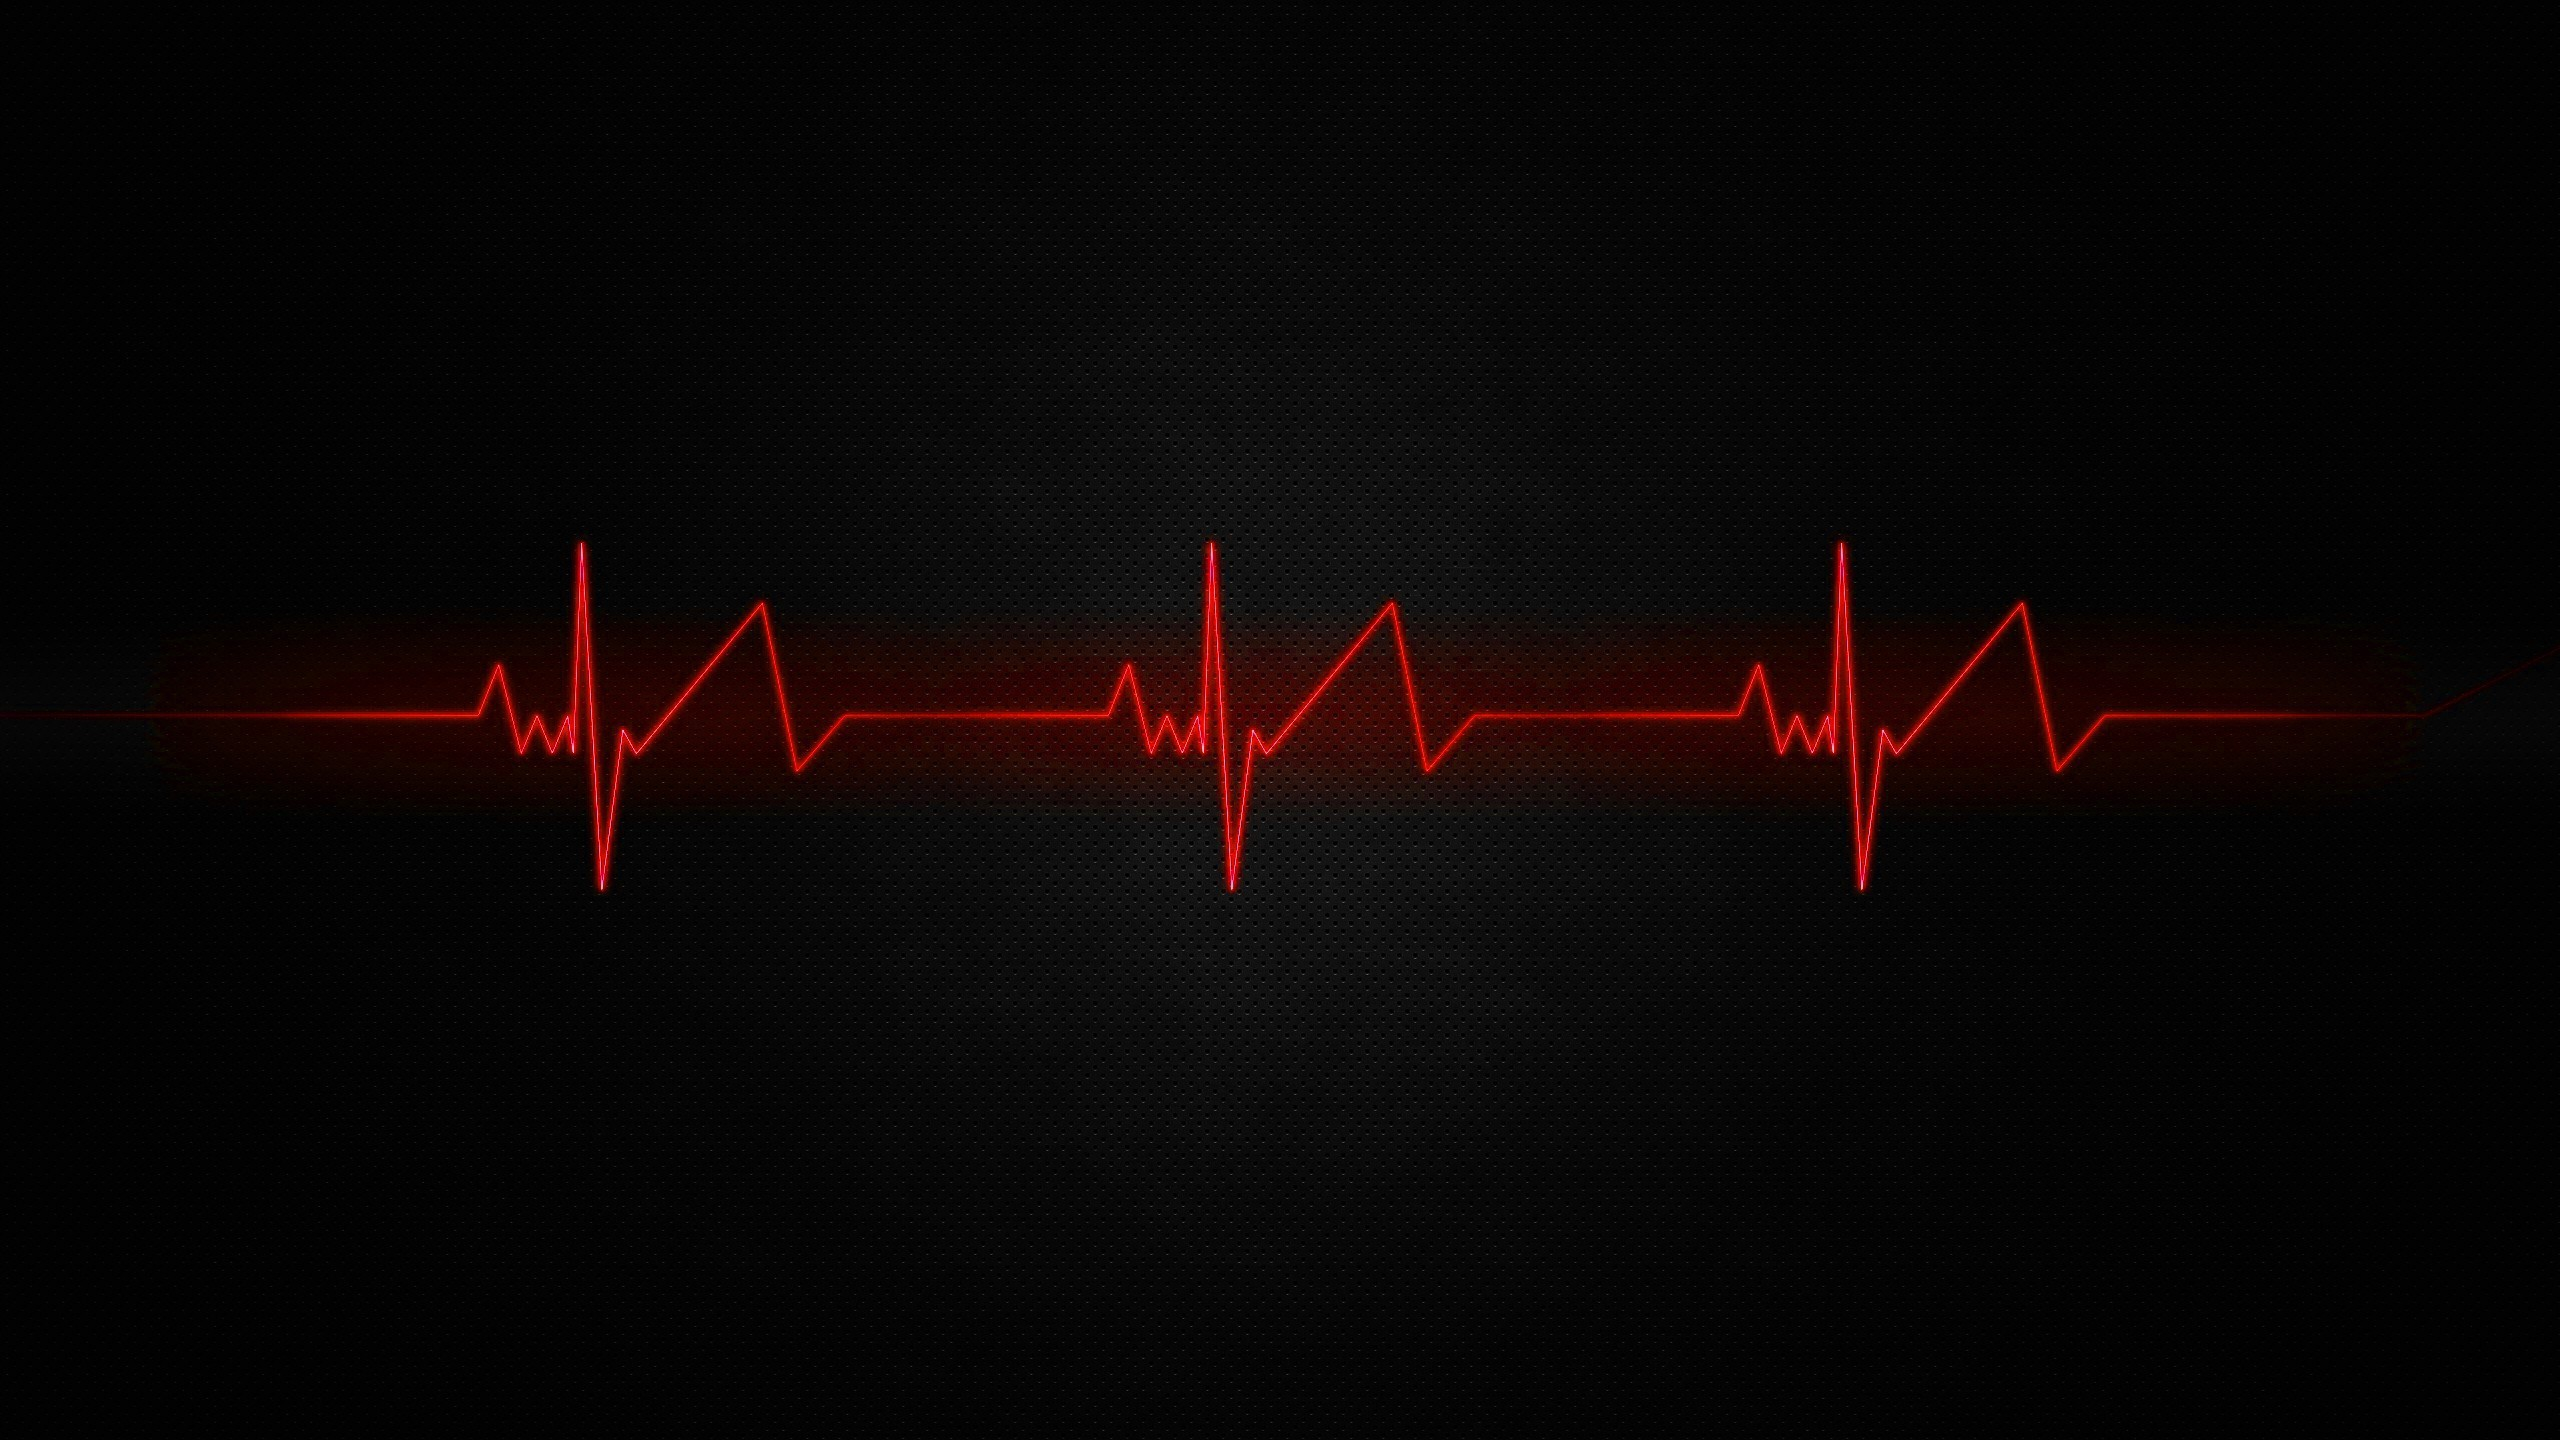 Backgrounds_Red_thread_heart_rate_on_a_black_background_104249_.jpg  (2560×1440) | pc wallpaper | Pinterest | Wallpaper